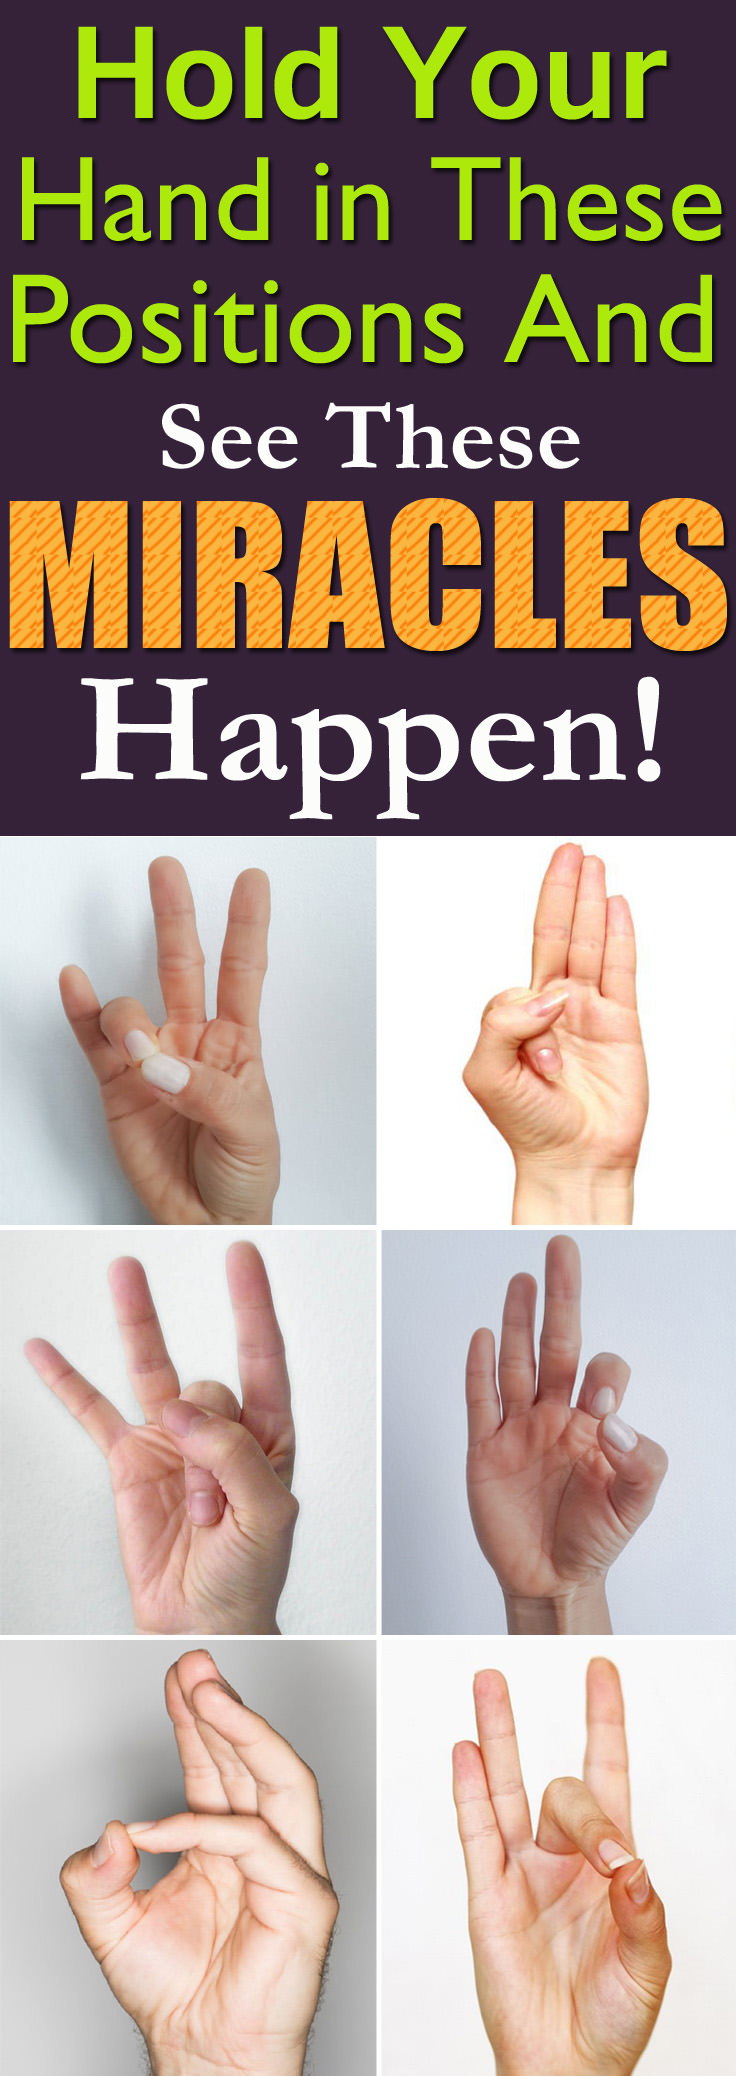 Start practicing one of these 6 Amazing Hand Mudras (poses) in Yoga and find miraculous improvement in your health!